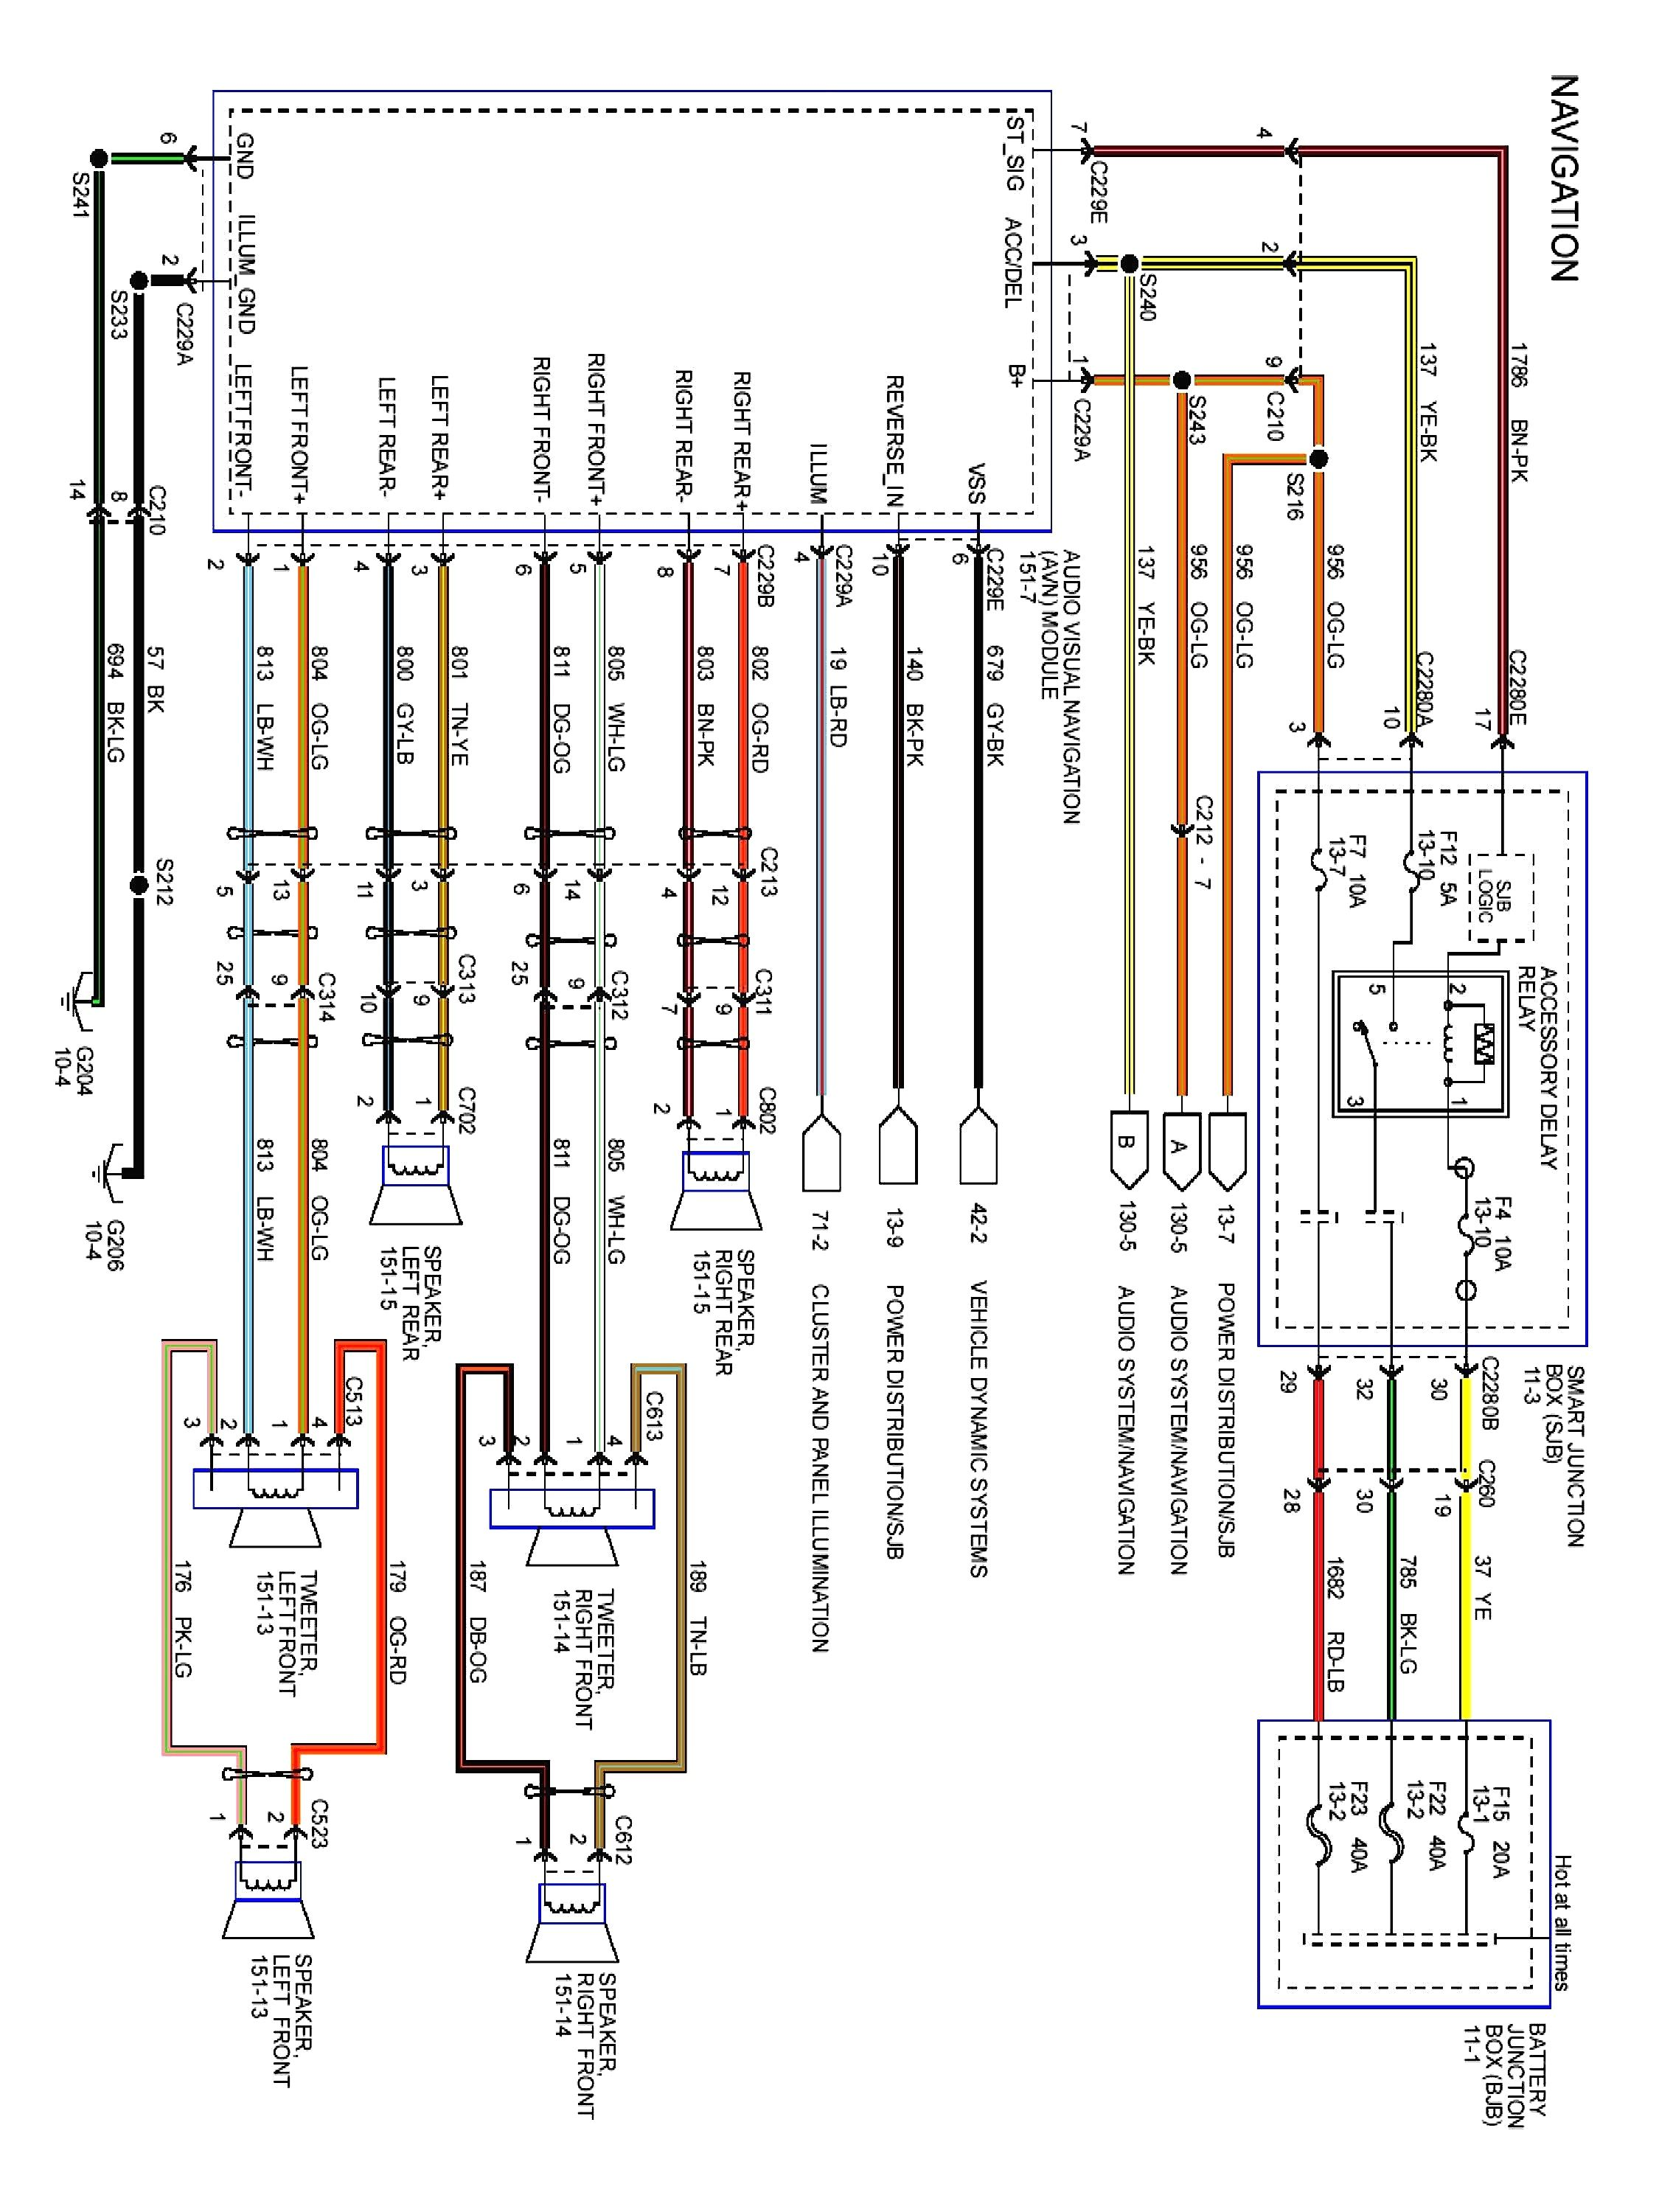 17 Great Ideas Of Ford Factory Amplifier Wiring Diagram Technique